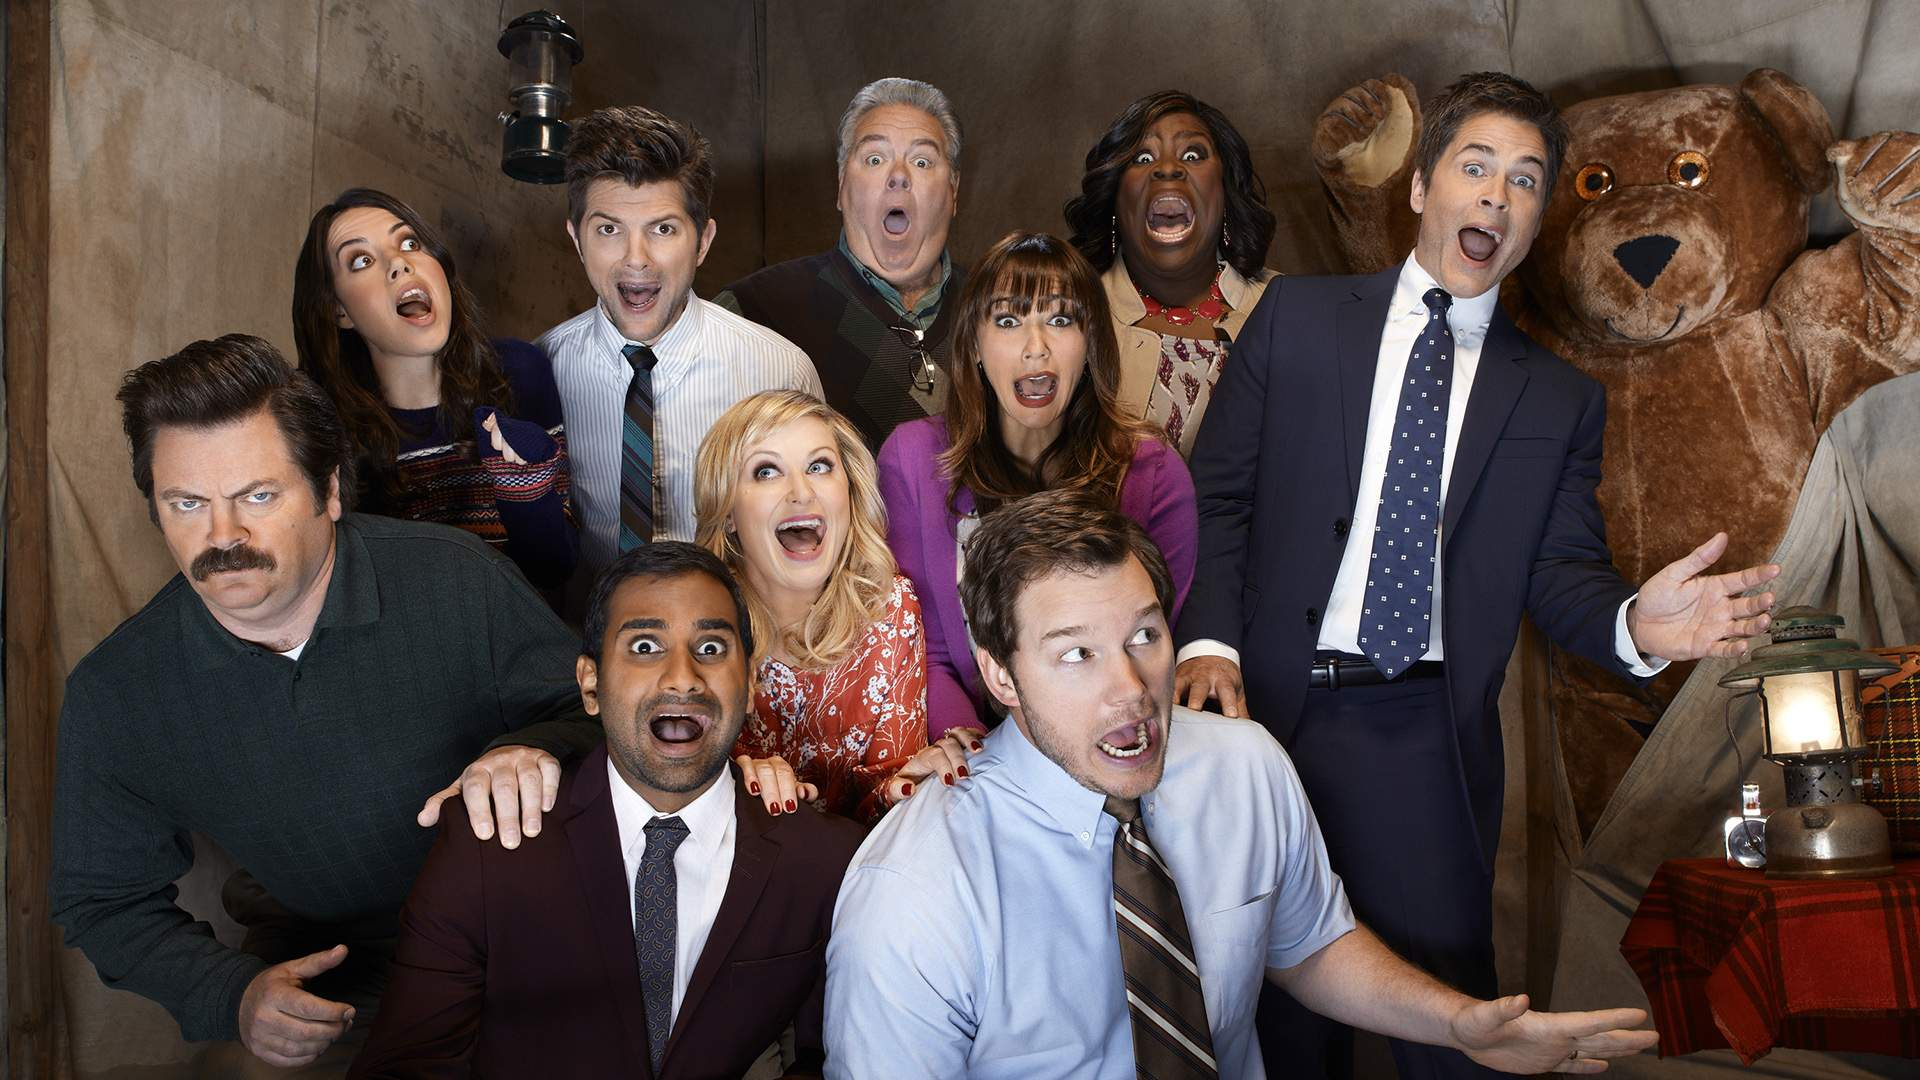 'Parks and Recreation' Is Coming Back for a One-Off Special COVID-19 Episode